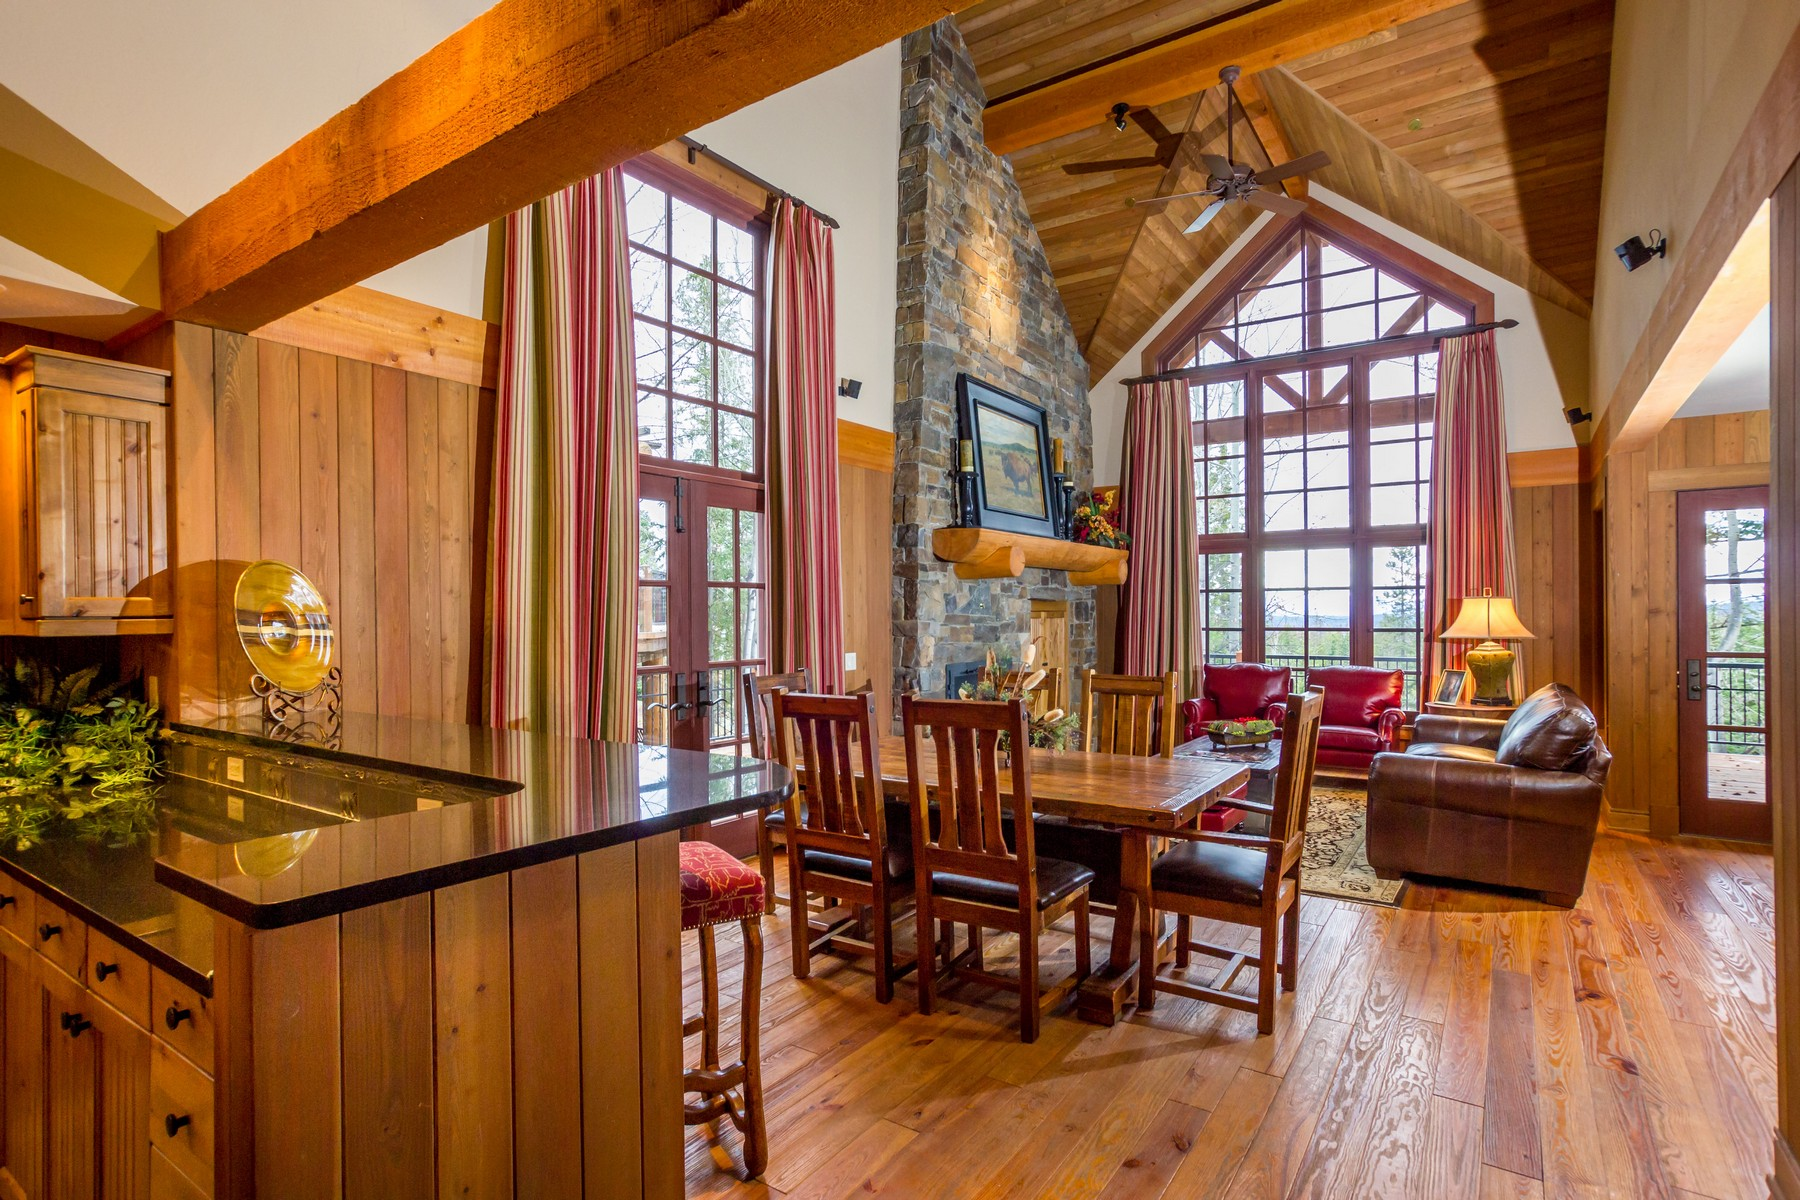 Condominium for Sale at Iron Horse Cabin Overlooking the 18th Fairway 2225 Larkspur Ln Whitefish, Montana 59937 United States